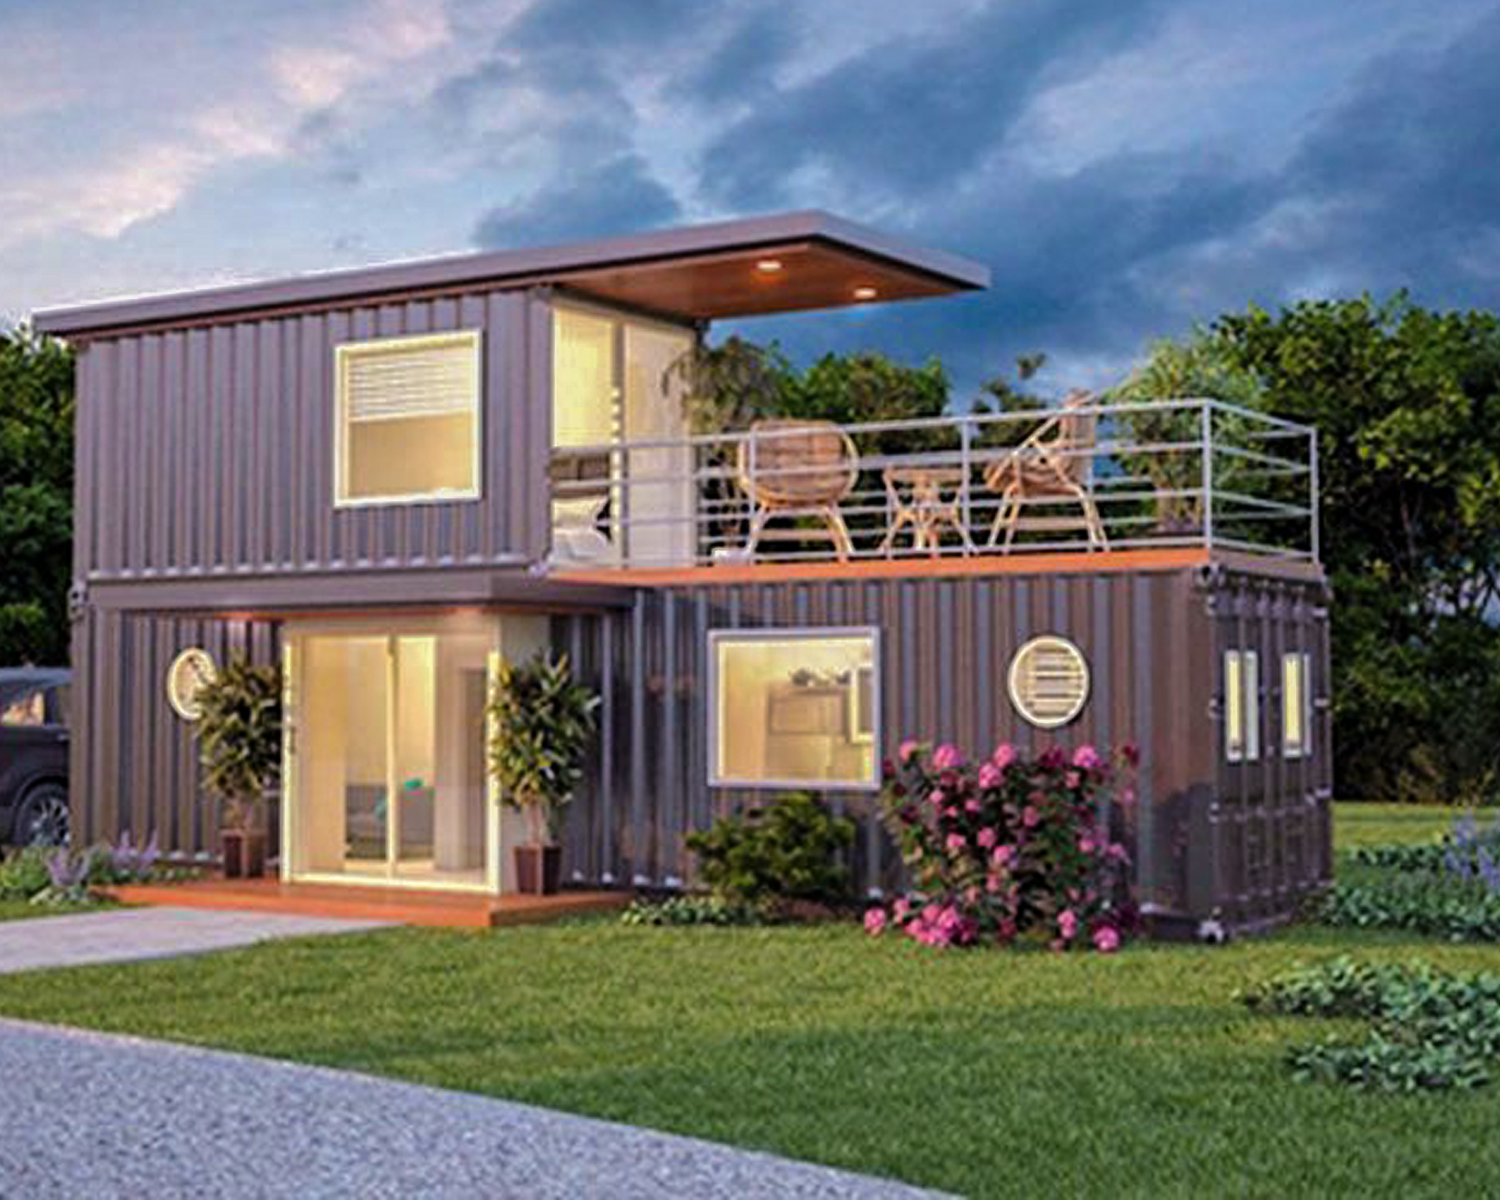 Living In A Shipping Container House In The Philippines Is